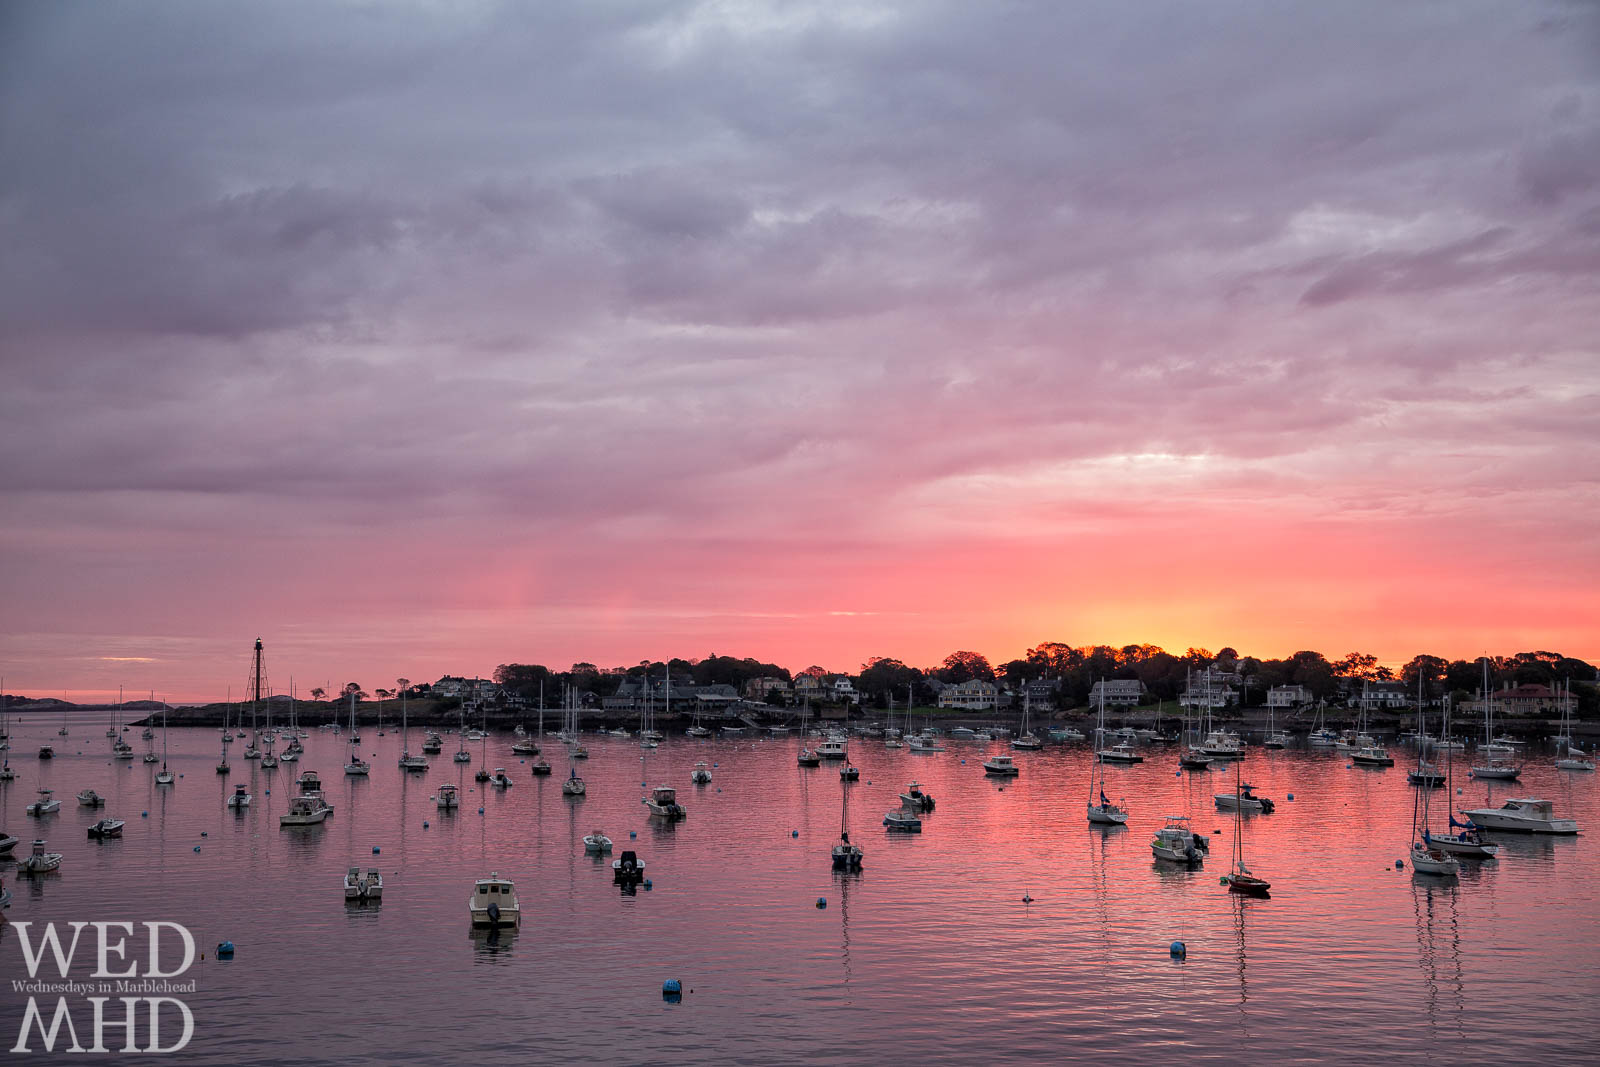 As dawn turns to day the sunrise glow forms over Marblehead Neck illuminating boats moored in the harbor